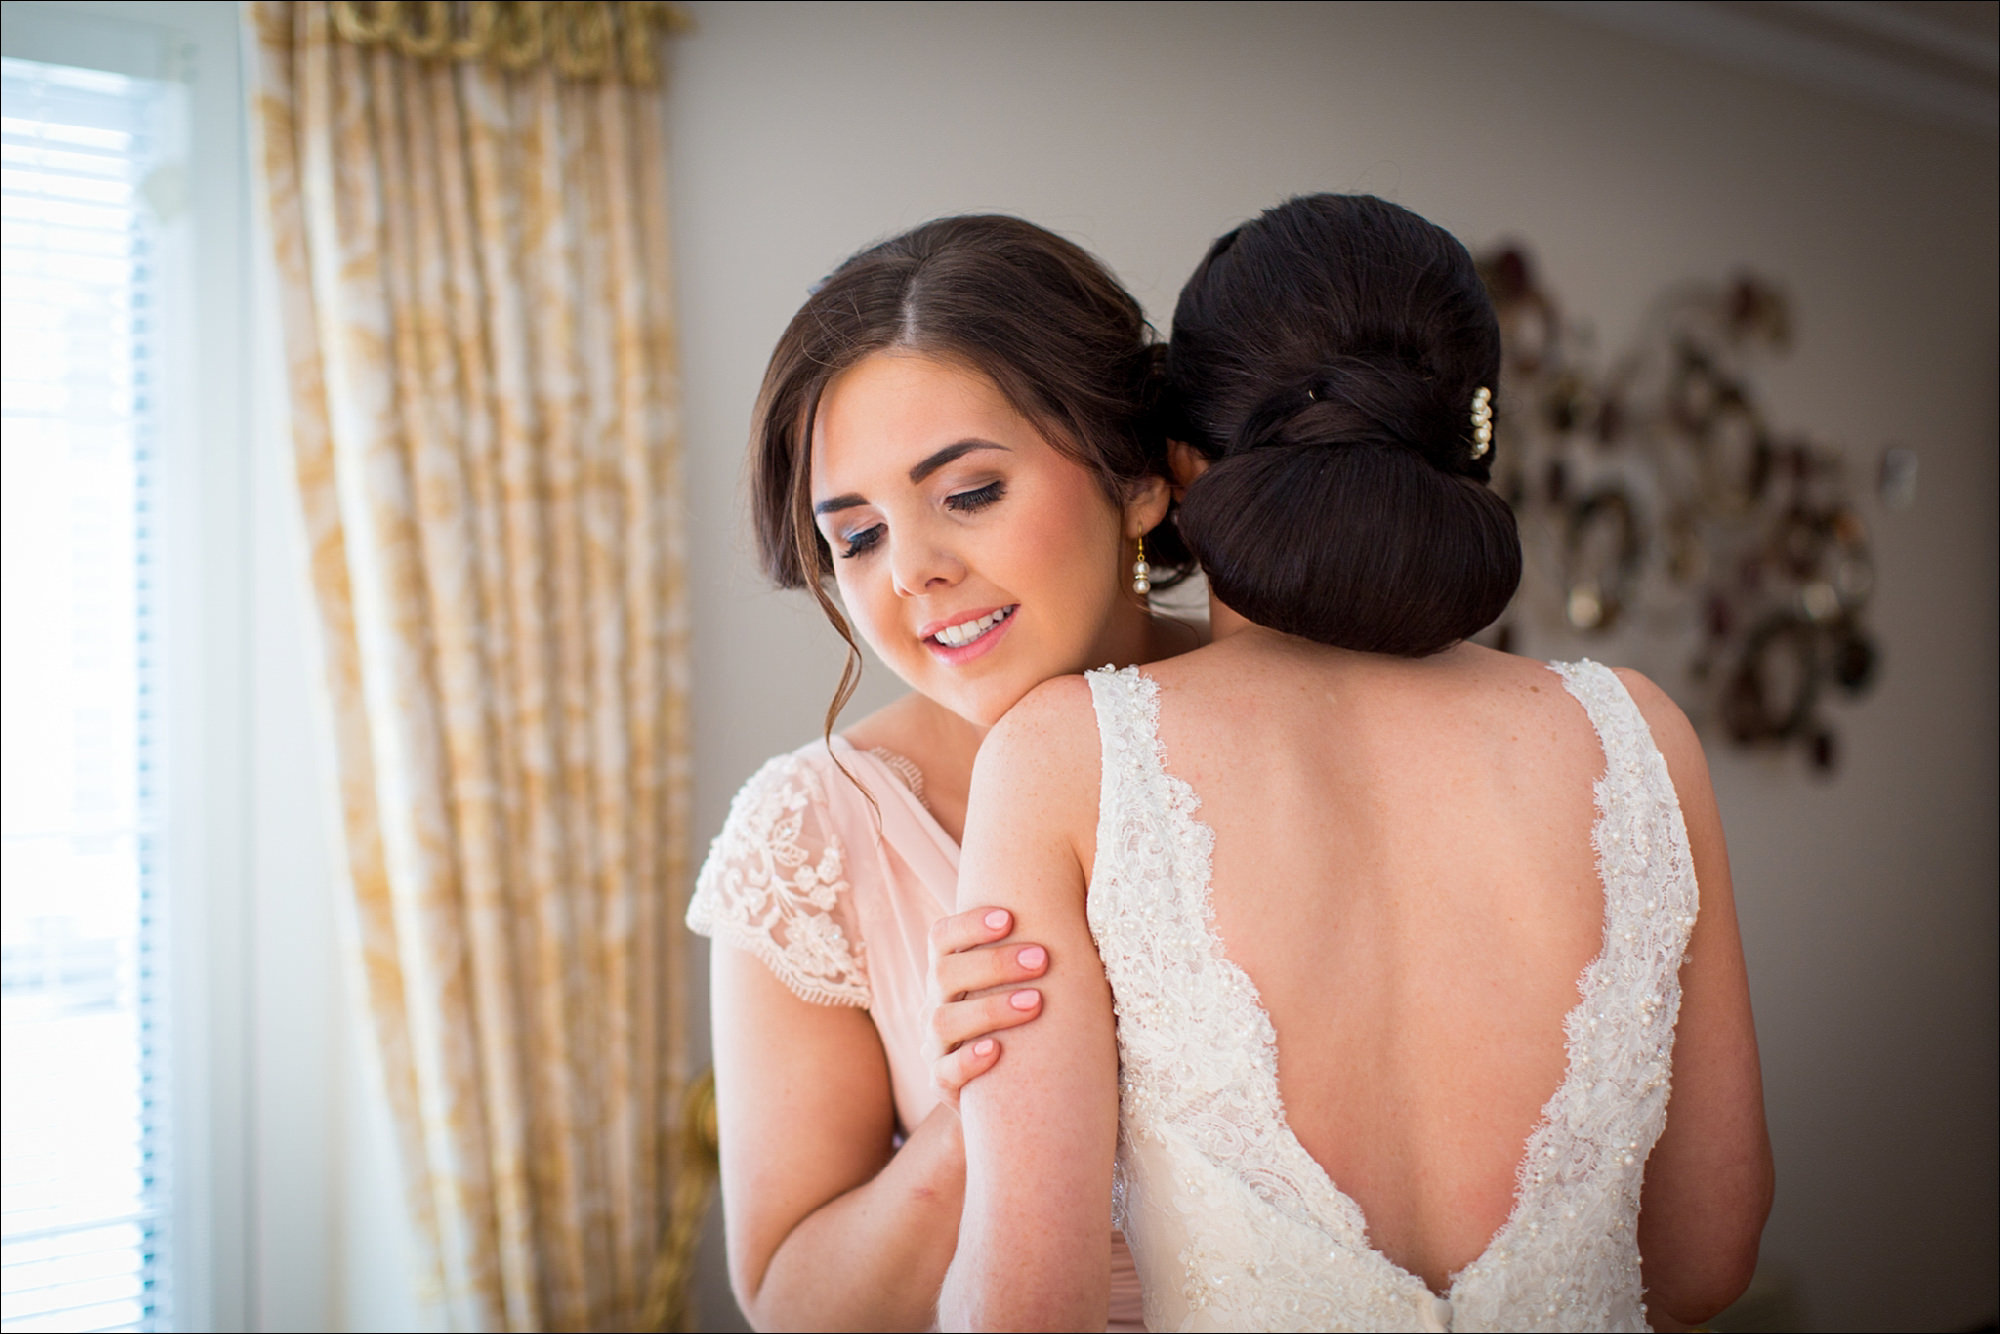 dublin wedding photographer david duignan photography bellingham castle weddings Ireland 0022